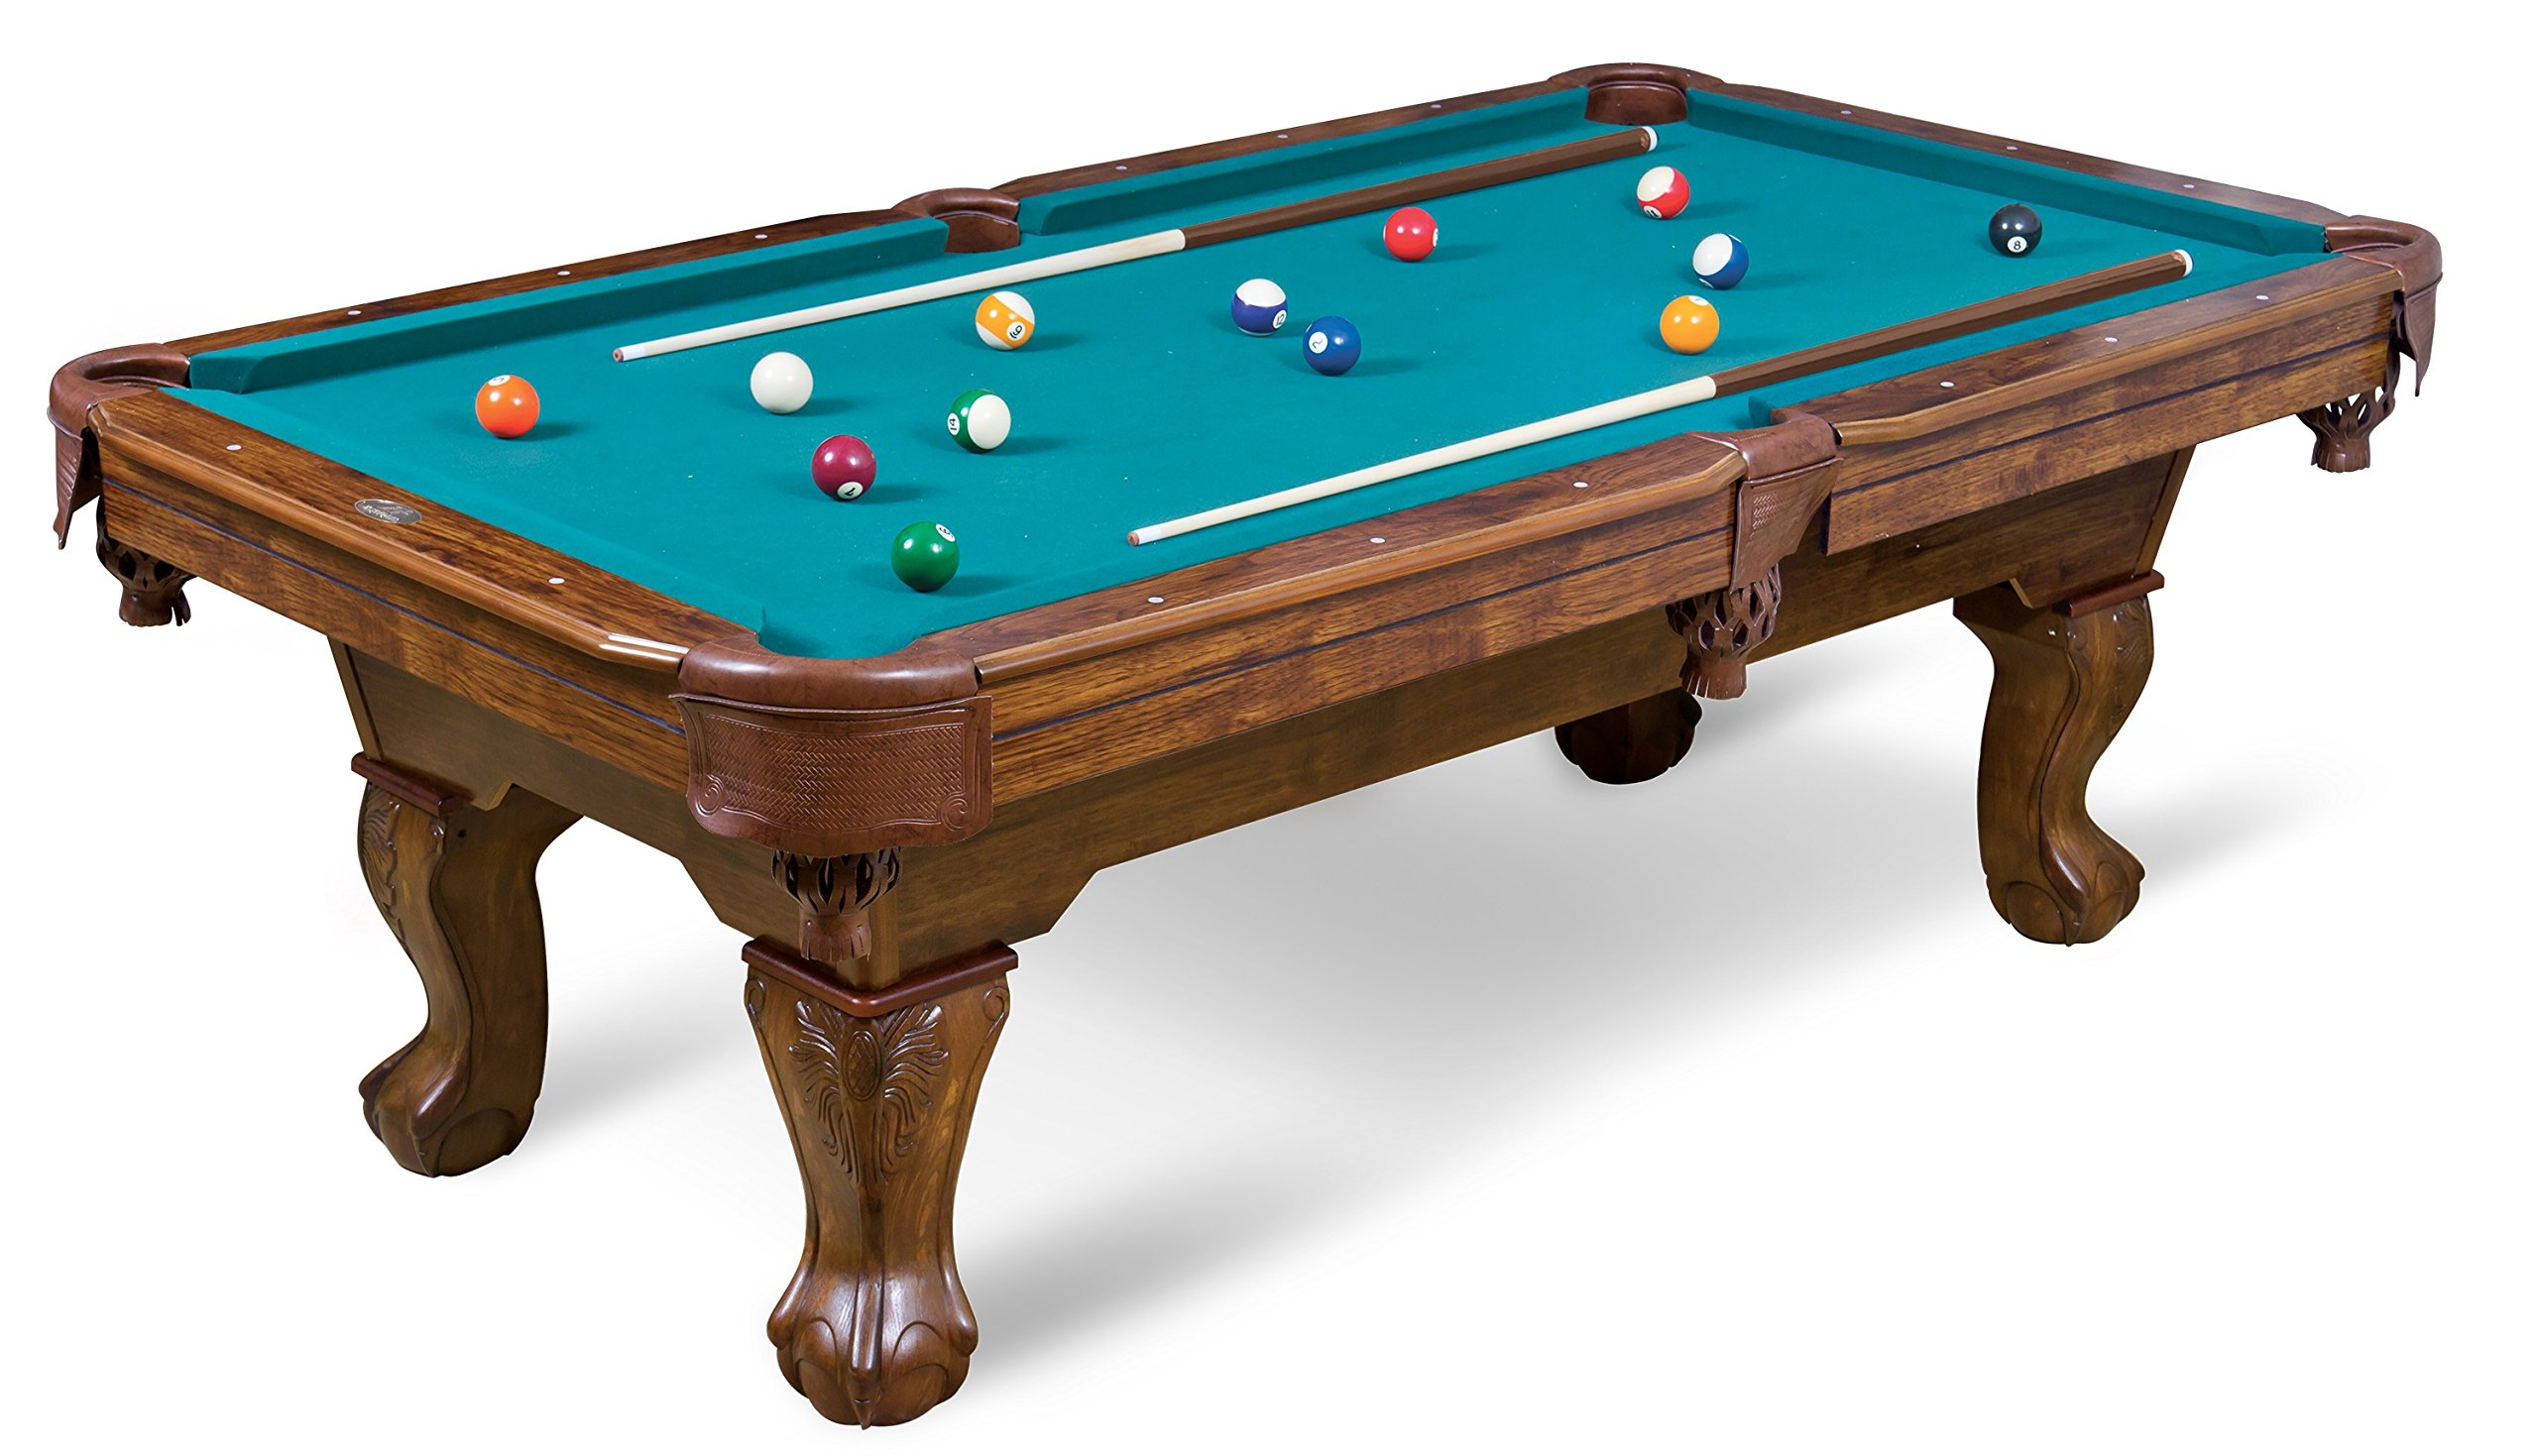 Buy Billiards Table Now!